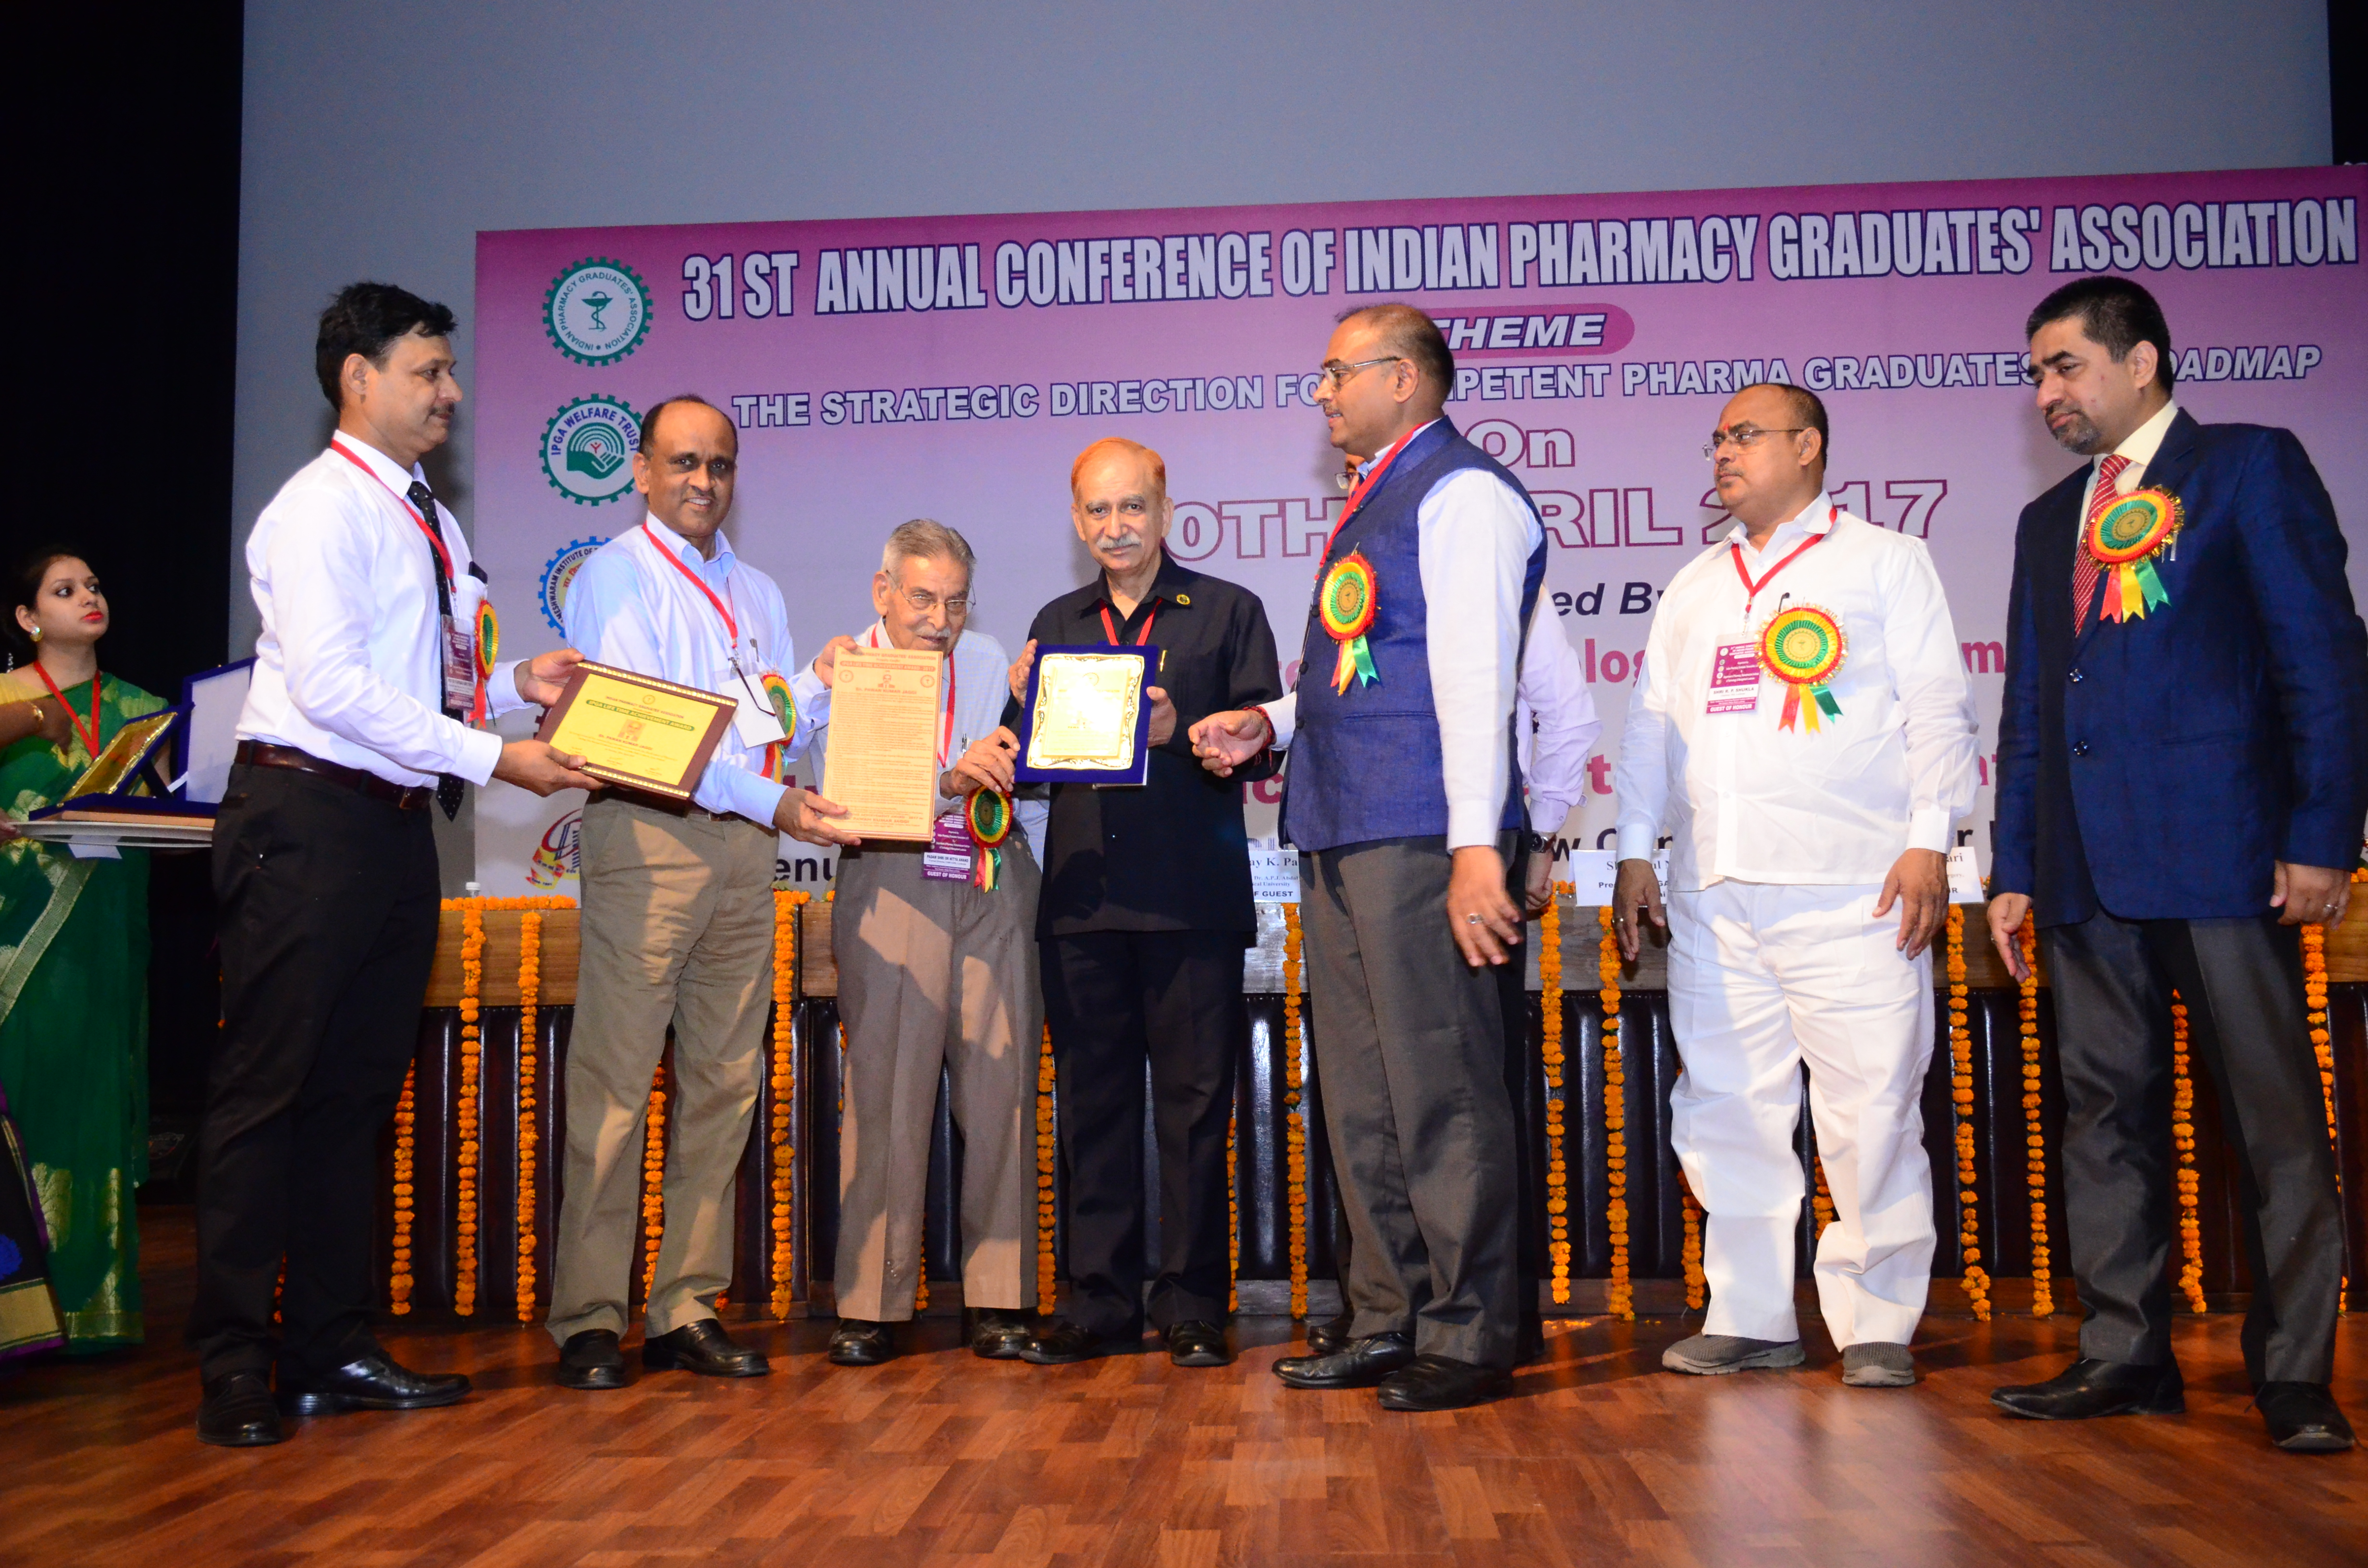 31st Annual Conference of Indian Pharmacy Graduates' Association